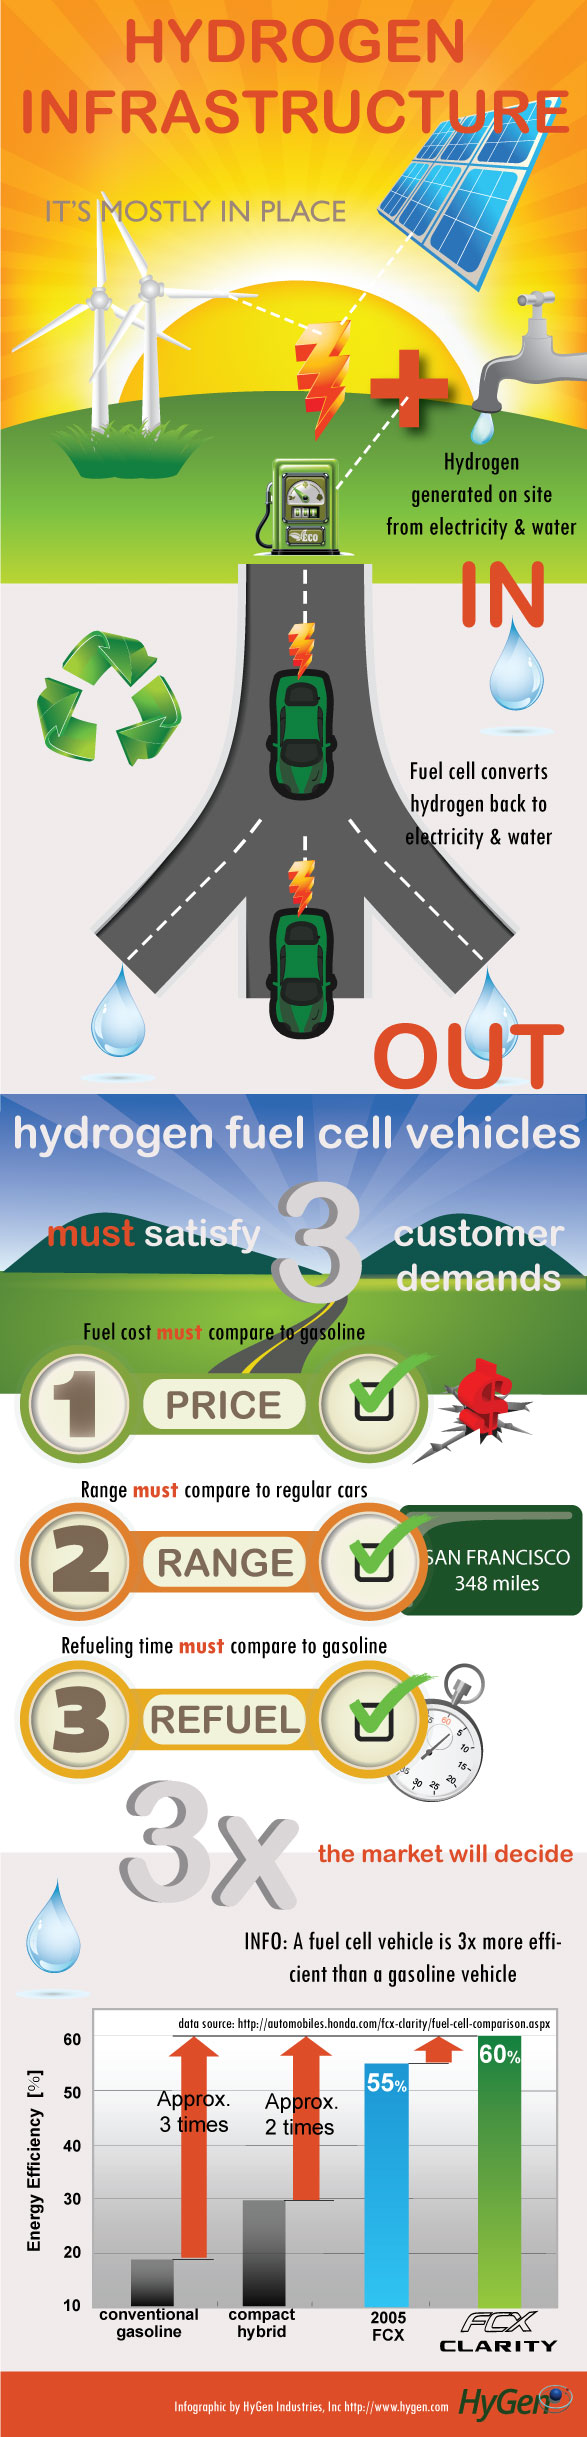 Hydrogen Fuel Cells Pros and Cons - HRF